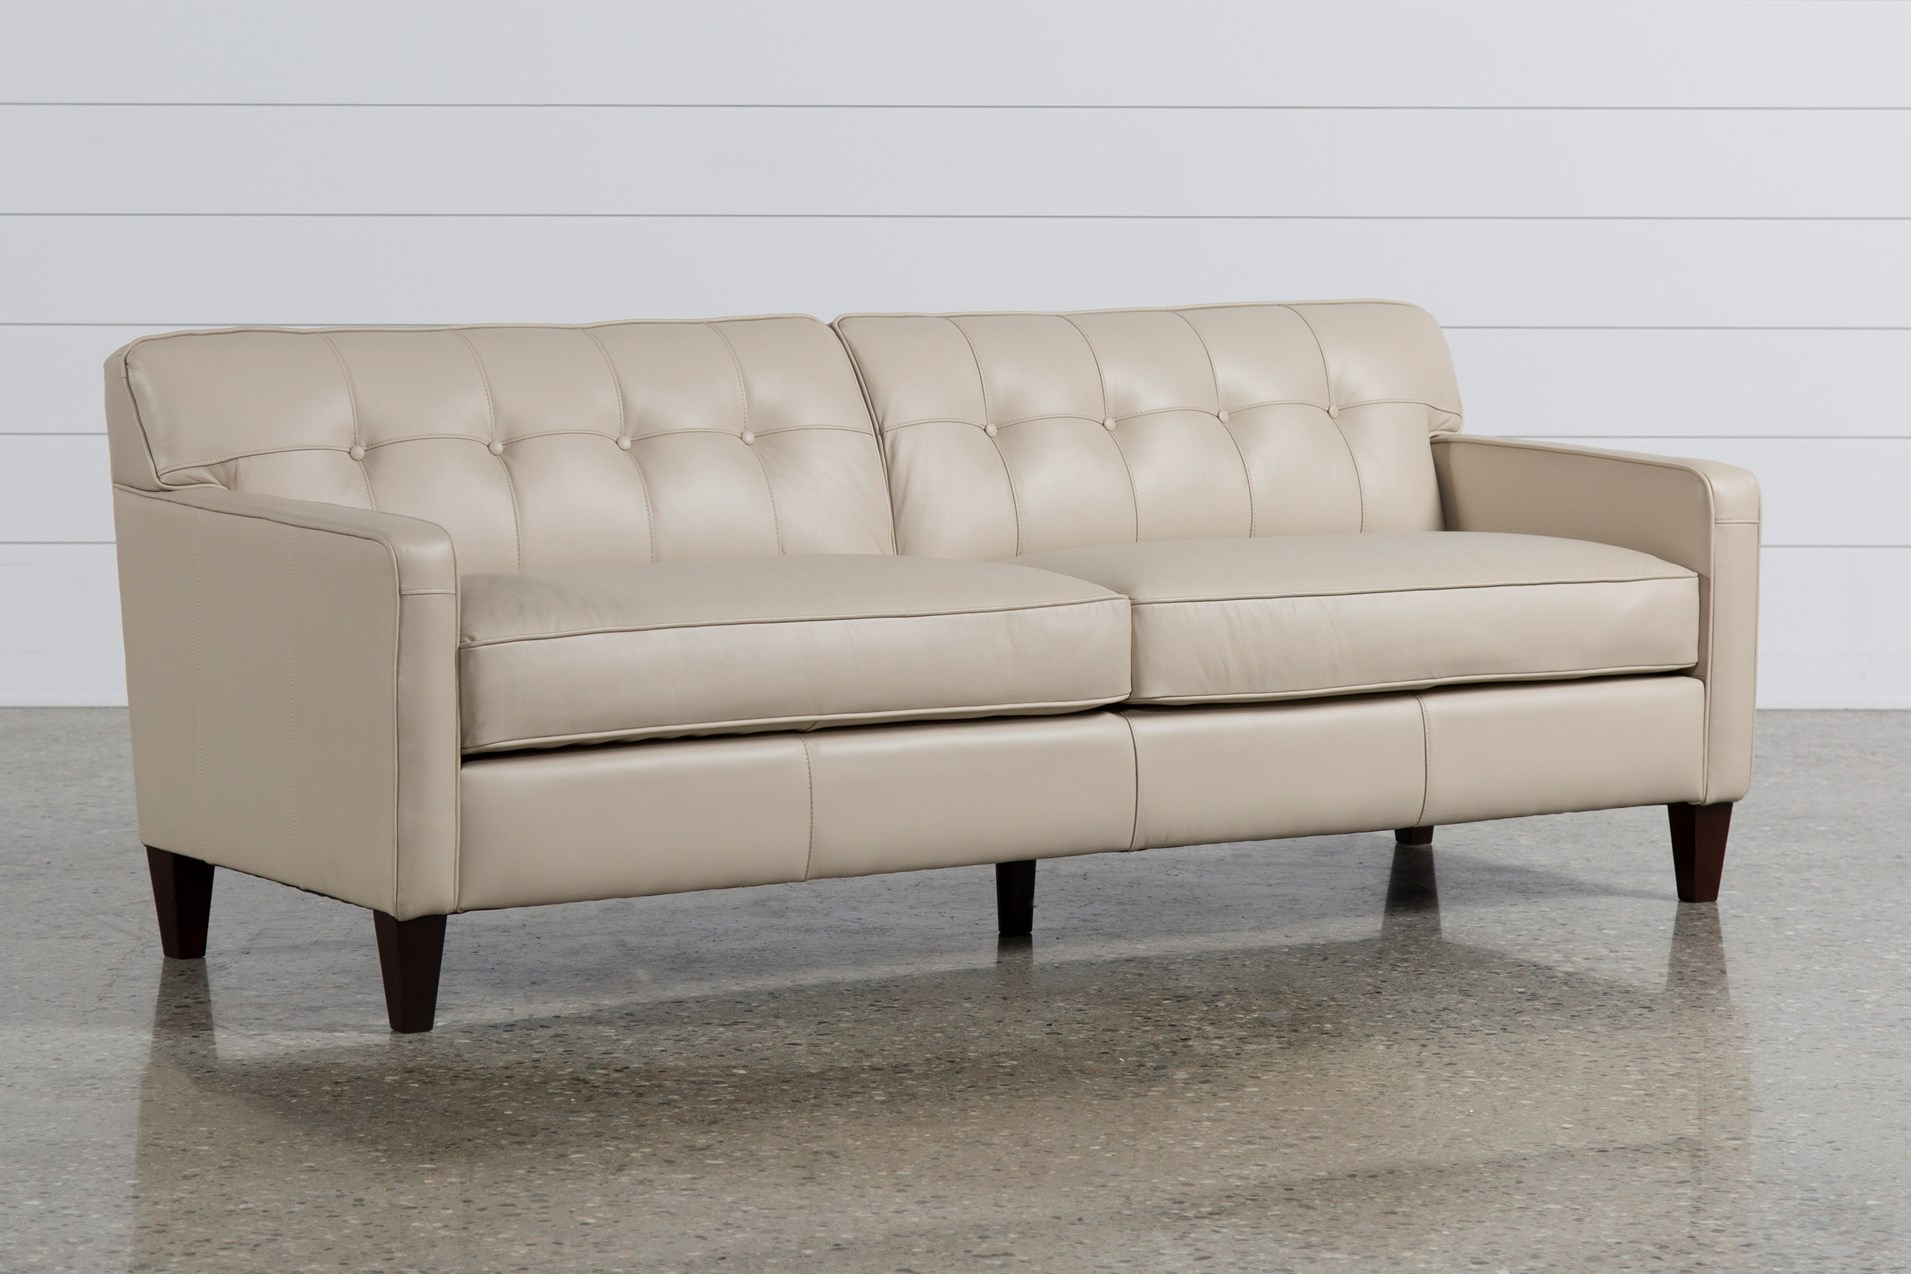 Leather Sofas Free Assembly With Delivery Living Spaces ~ Beige Color Leather Sofa